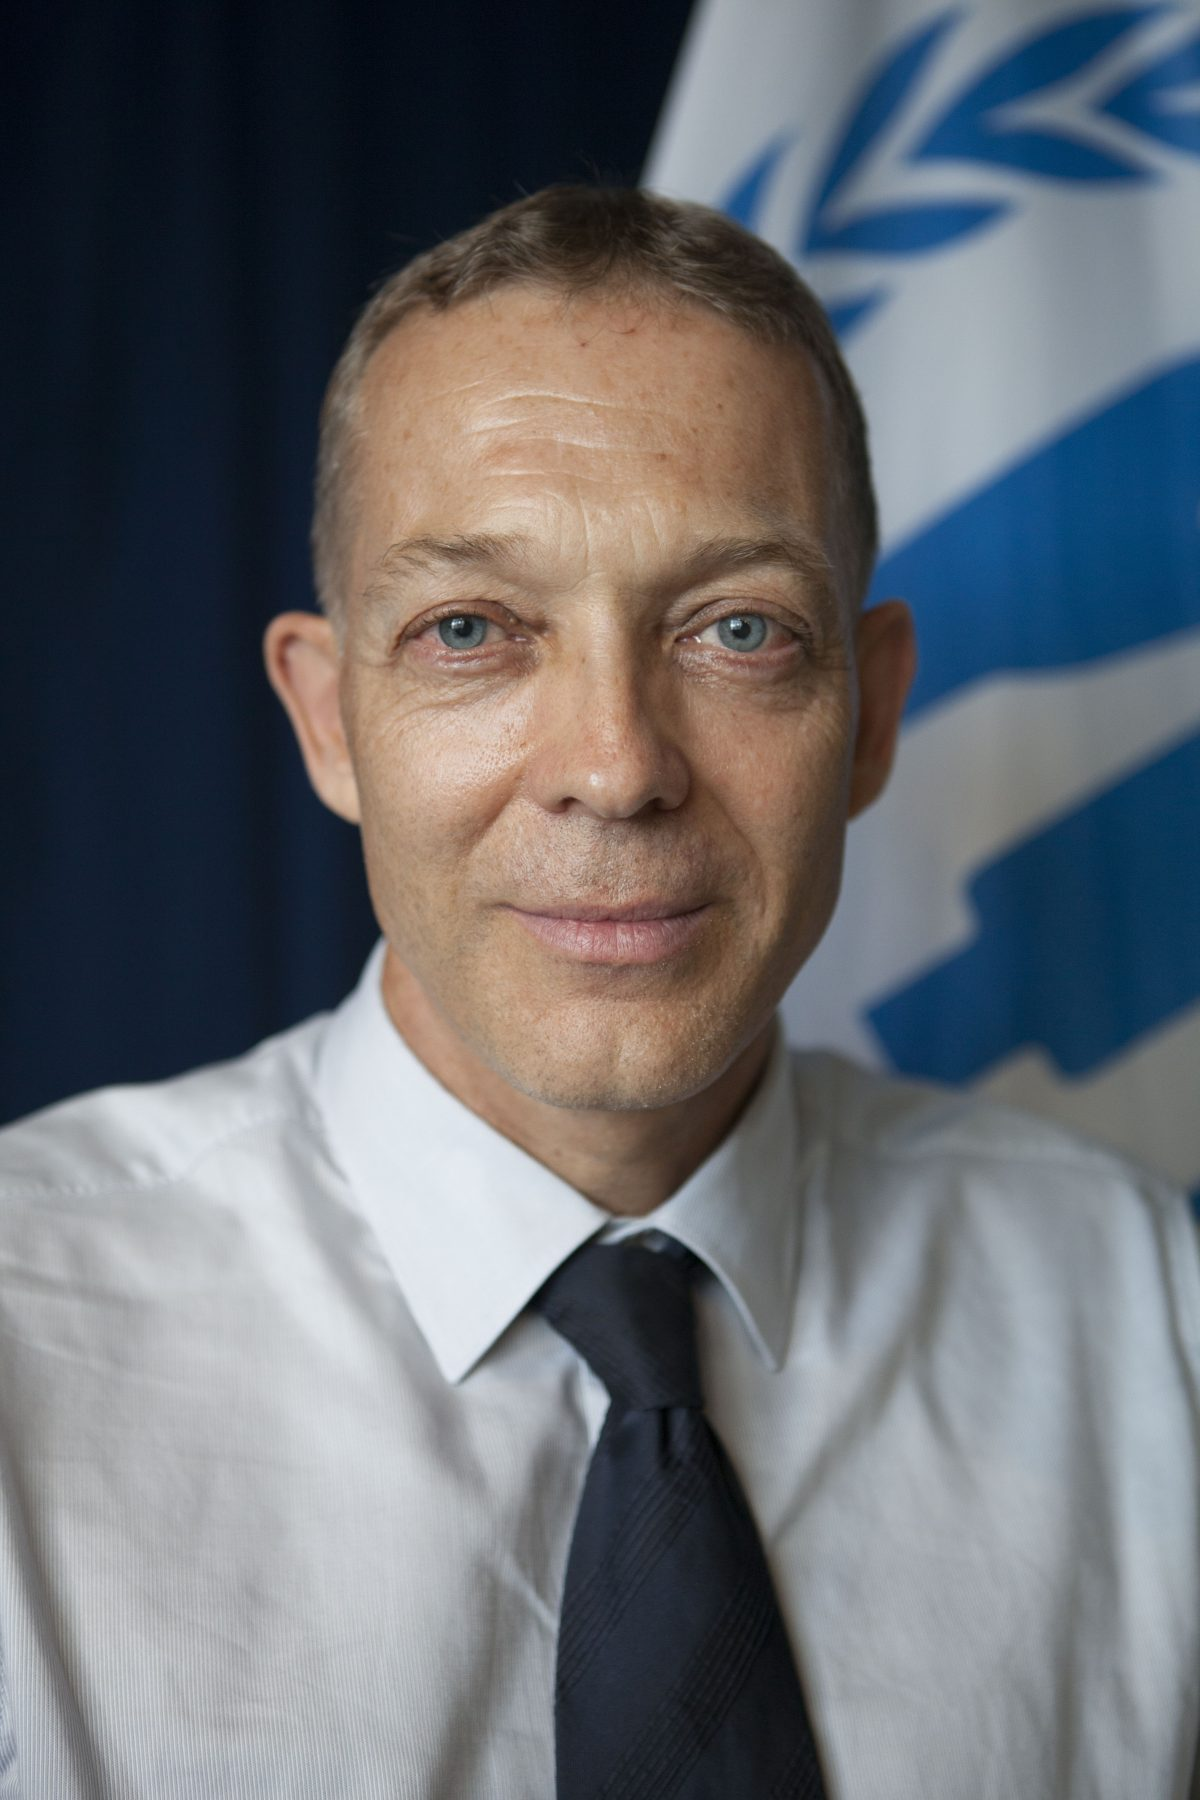 UNHCR's Director, Department of External Relations, Daniel Endres.